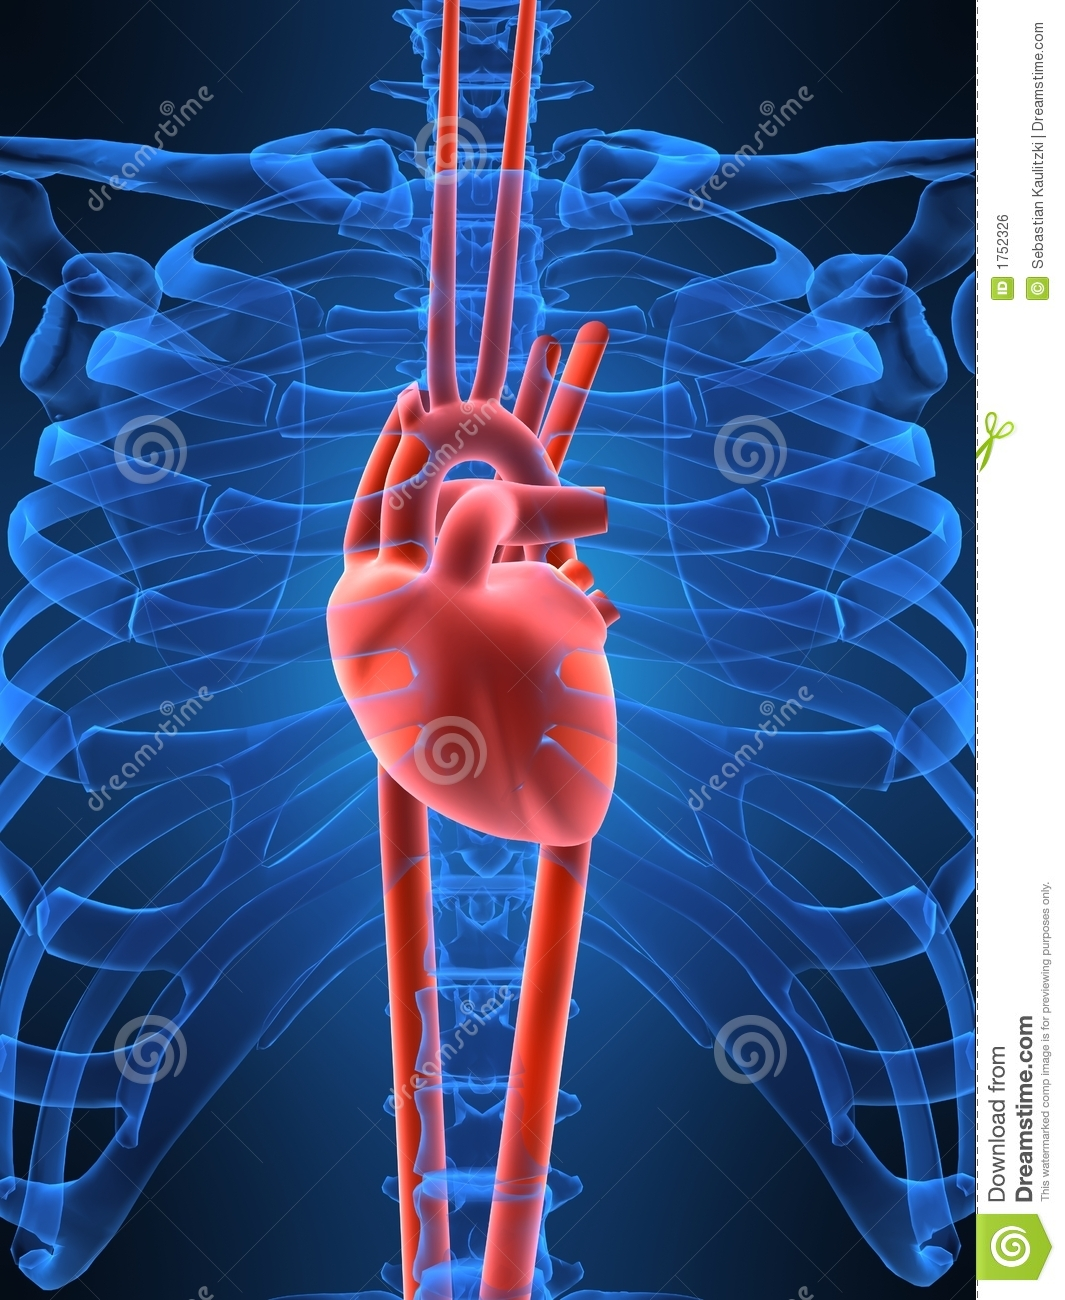 Human heart stock illustration illustration of rate education download human heart stock illustration illustration of rate education 1752326 ccuart